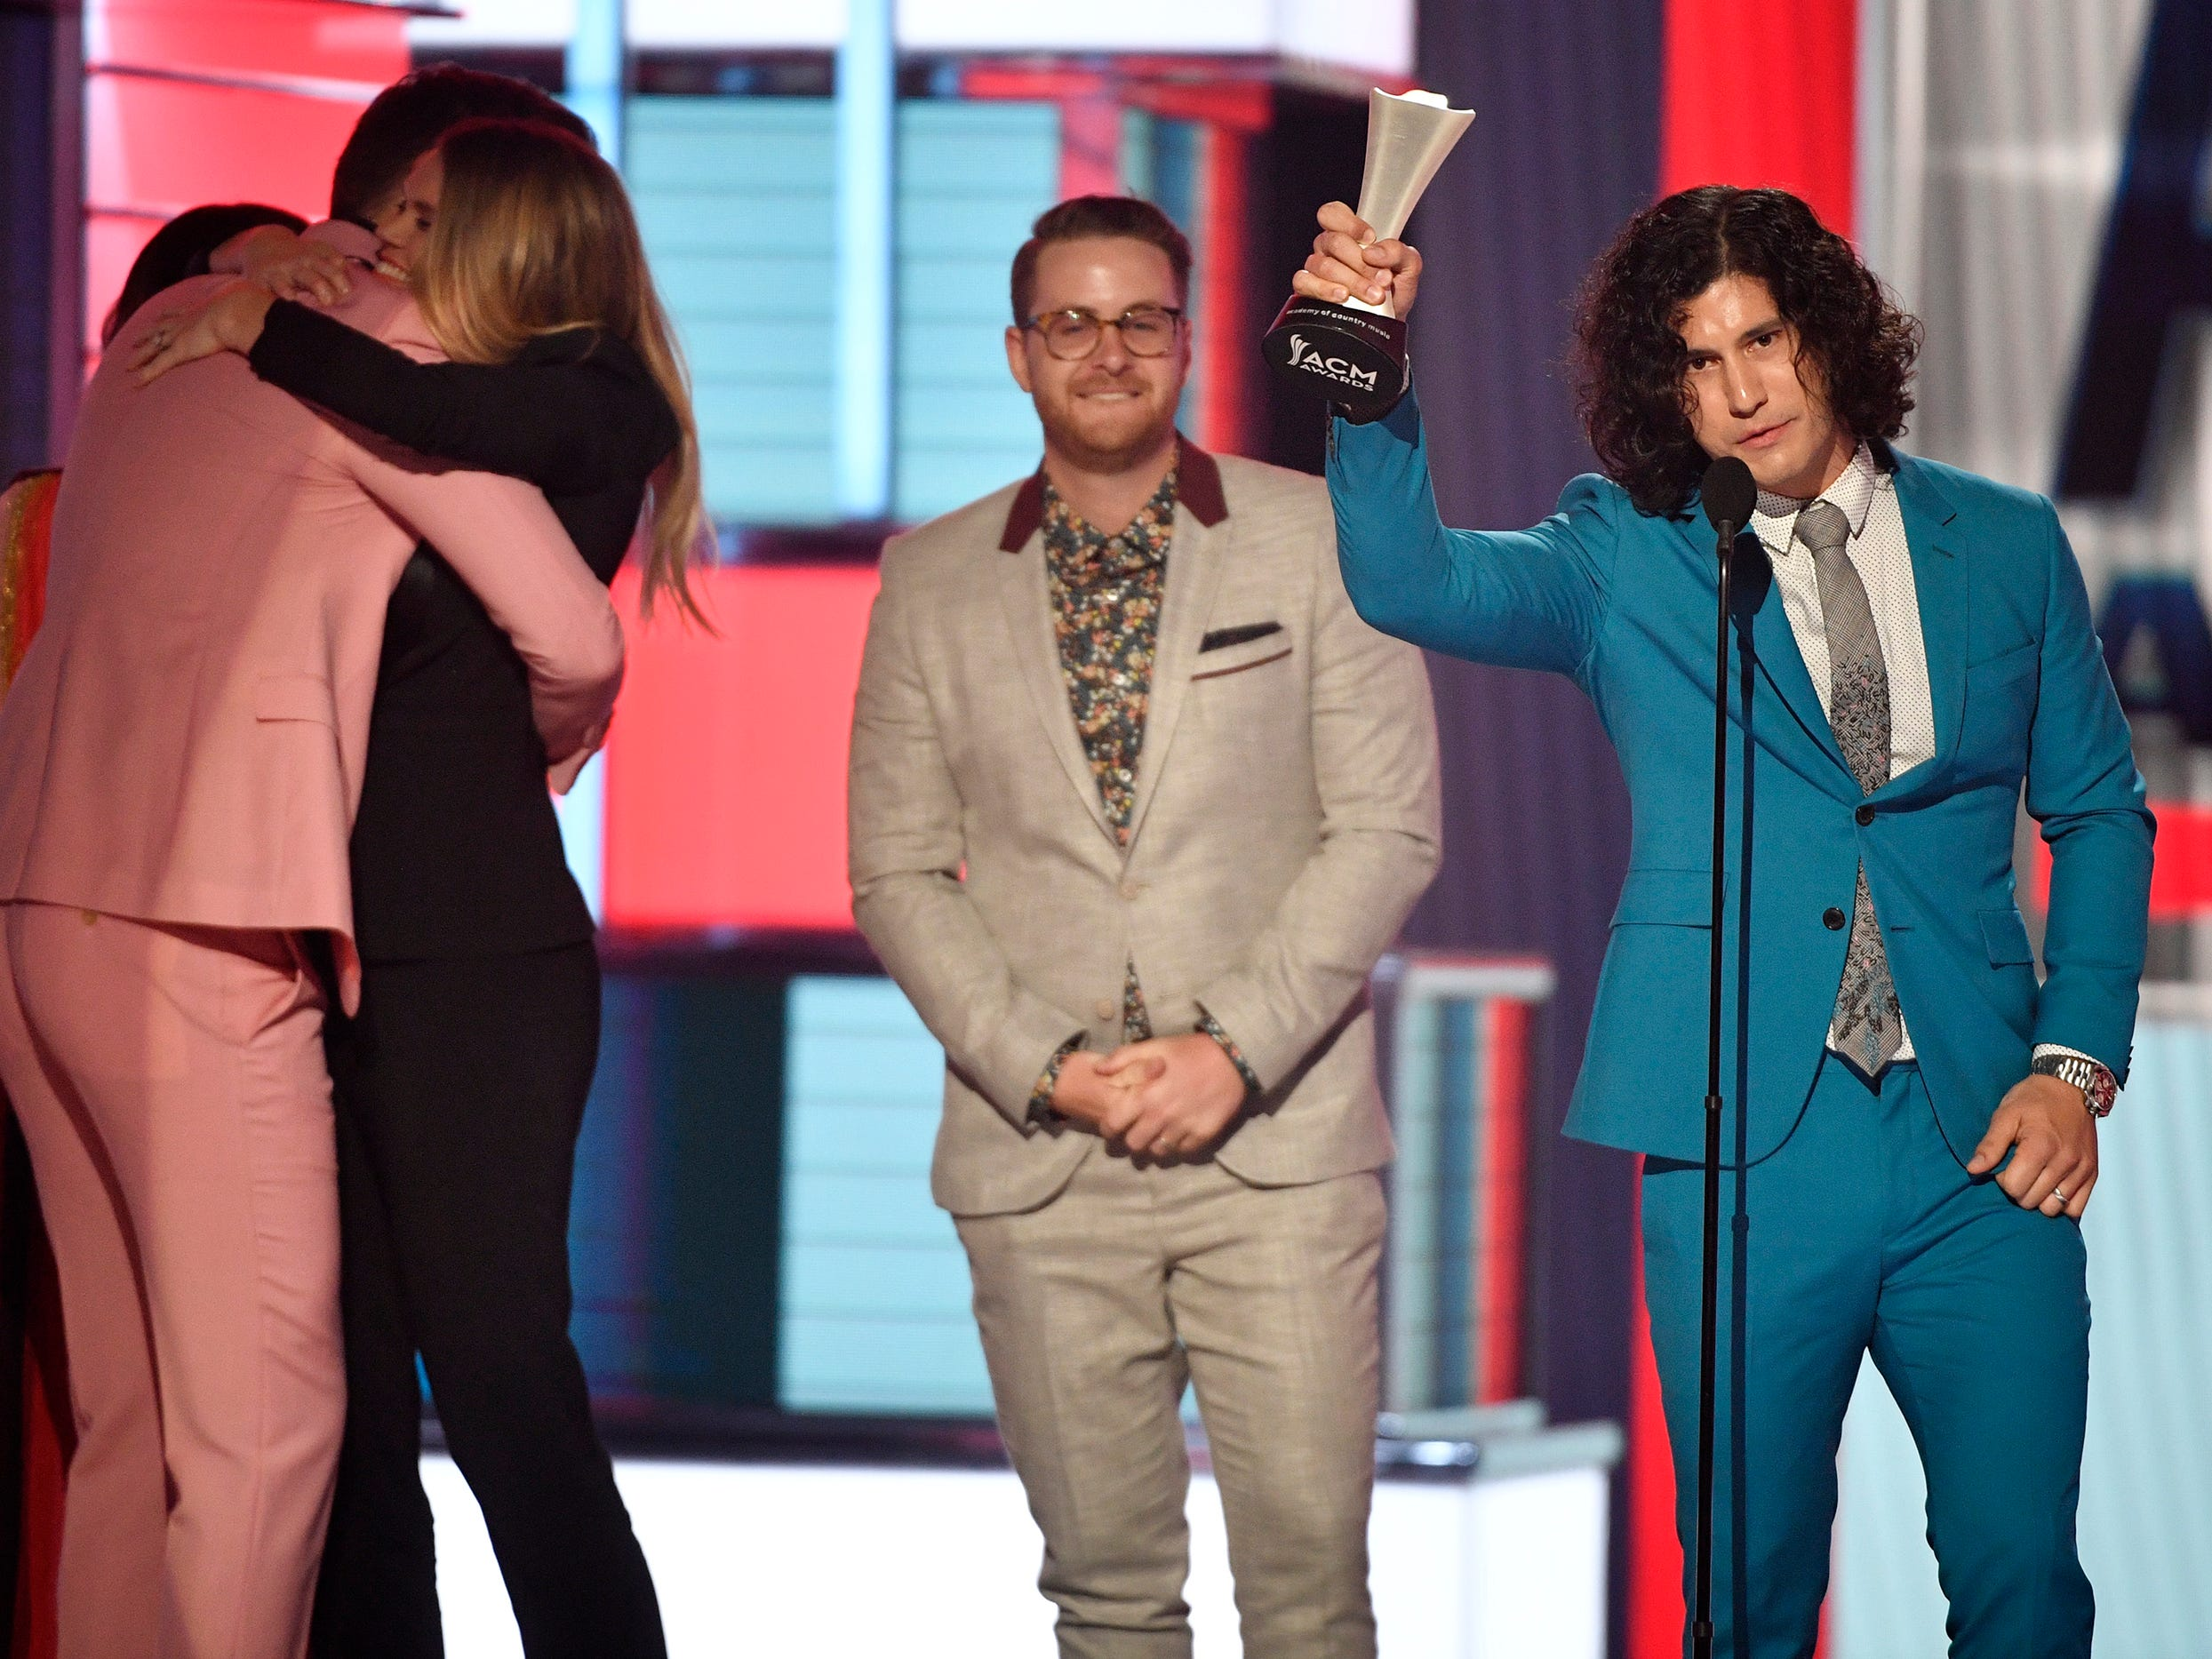 Dan Smyers of Dan + Shay, right, with Jordan Reynolds, center, accepts the song of the year award for Tequila, during the 54TH Academy of Country Music Awards Sunday, April 7, 2019, in Las Vegas, Nev.